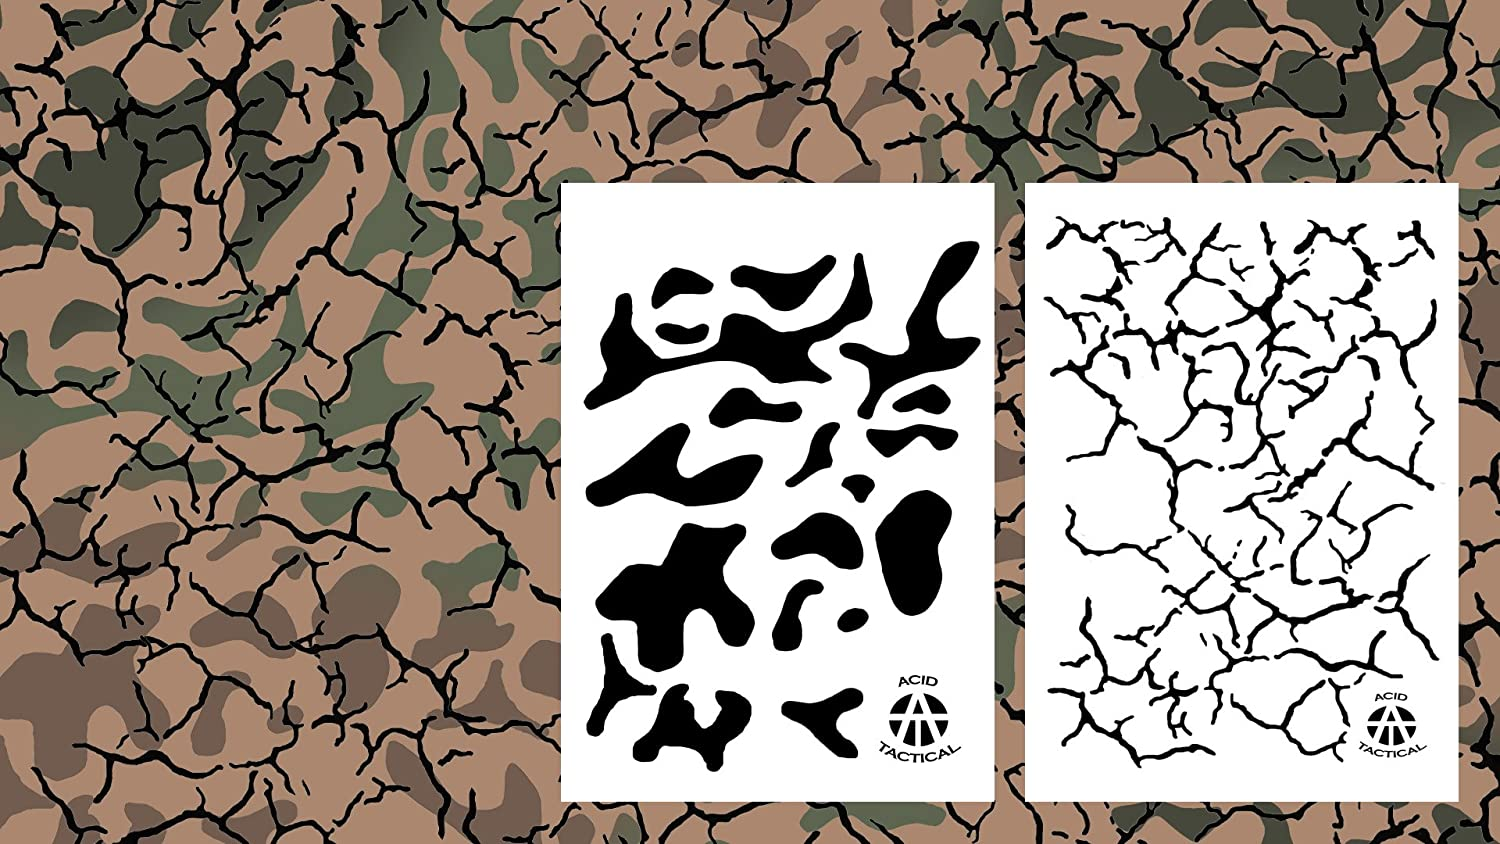 Acid Tactical/® 10/ design/  /  erba, corteccia, digitale, Multicam, felce, Jag, Hexacam, Cracked Earth, quercia, grano / 23/ x 35/ cm camouflage vinile stencil aerografo vernice spray/